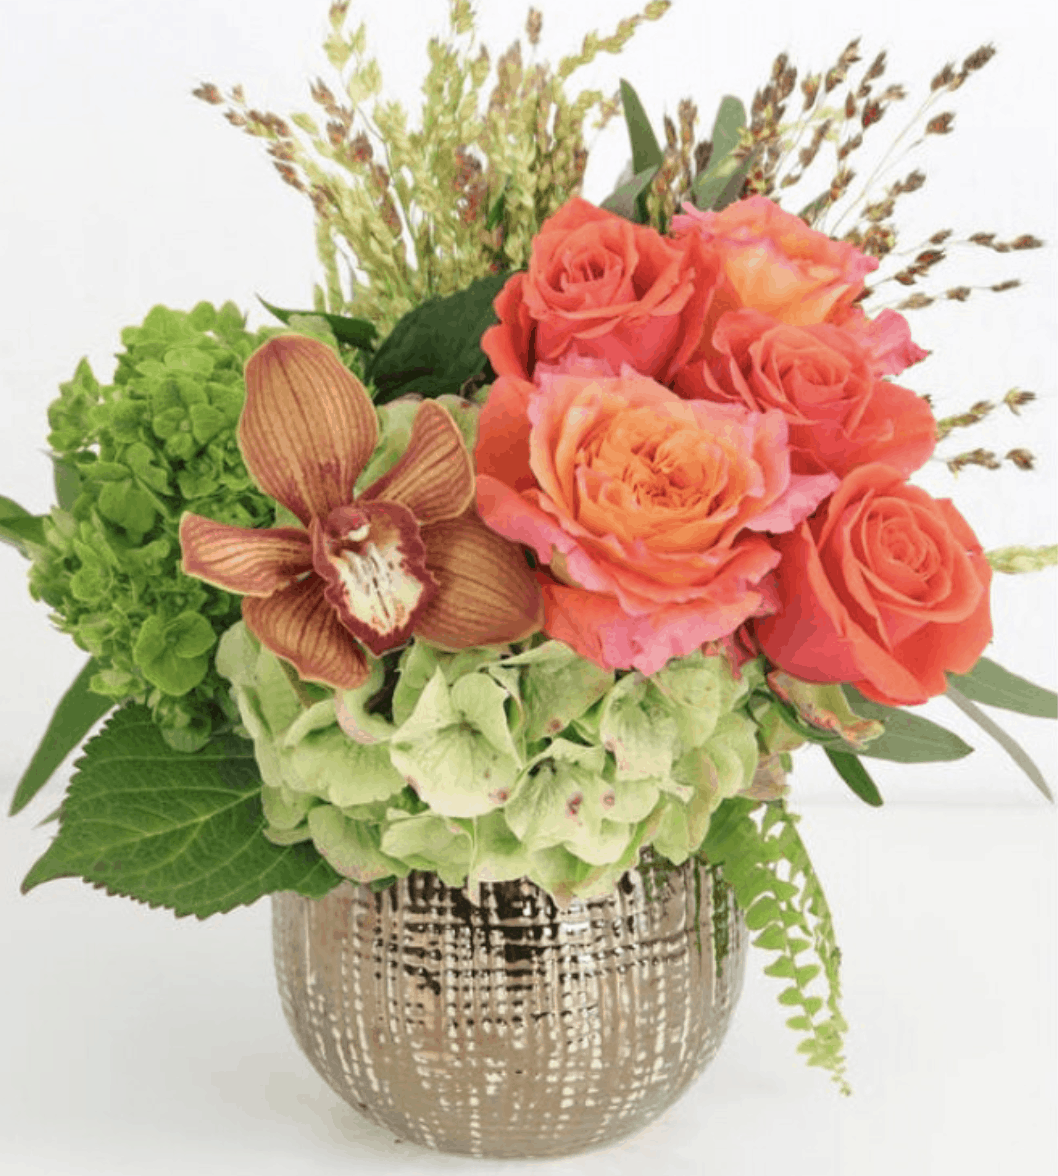 Celebrate National Floral Design Day at Our Tucson Flower Shop